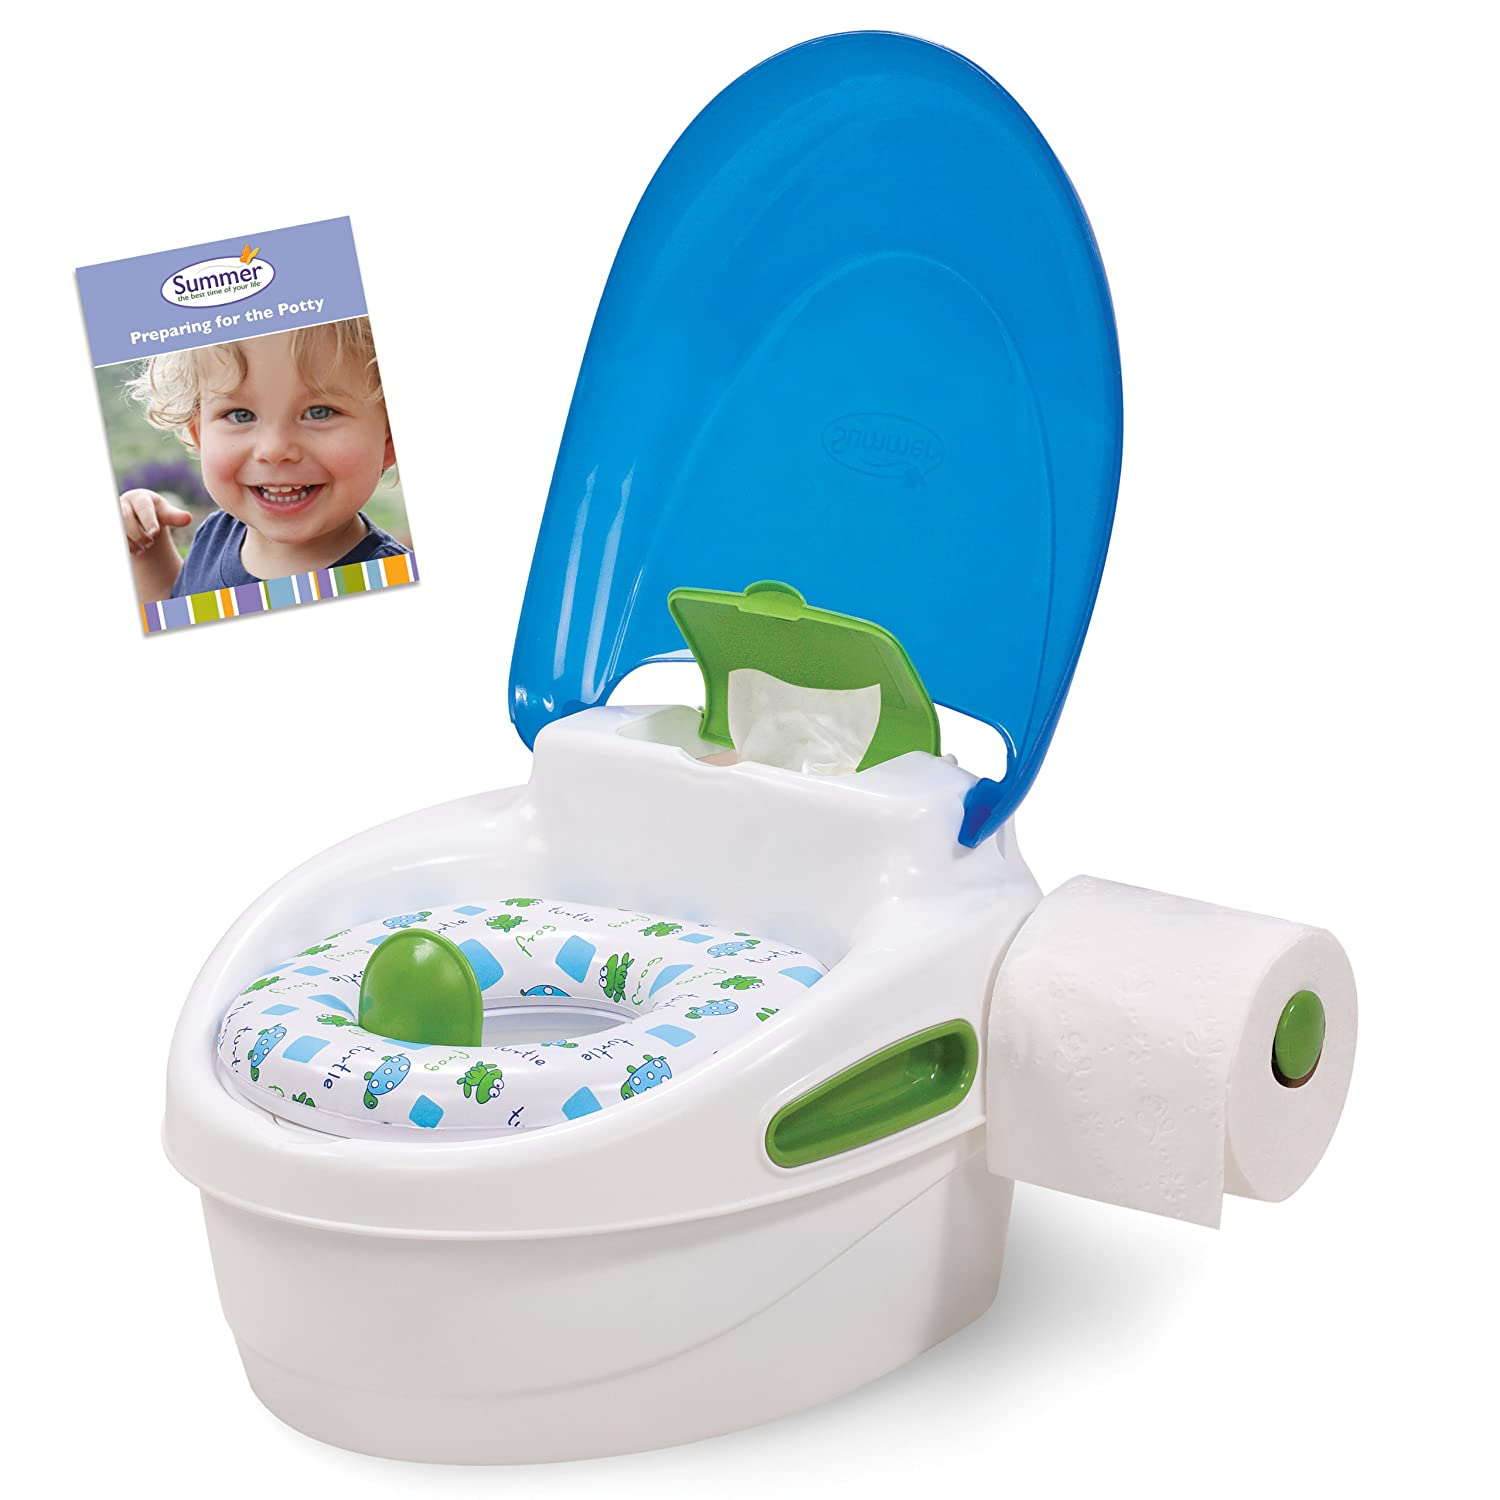 Amazon.com  Summer Infant Step-By-Step Potty Trainer and Step Stool Blue/ Green  Toilet Training Potties  Baby  sc 1 st  Amazon.com : potty chair step stool - islam-shia.org